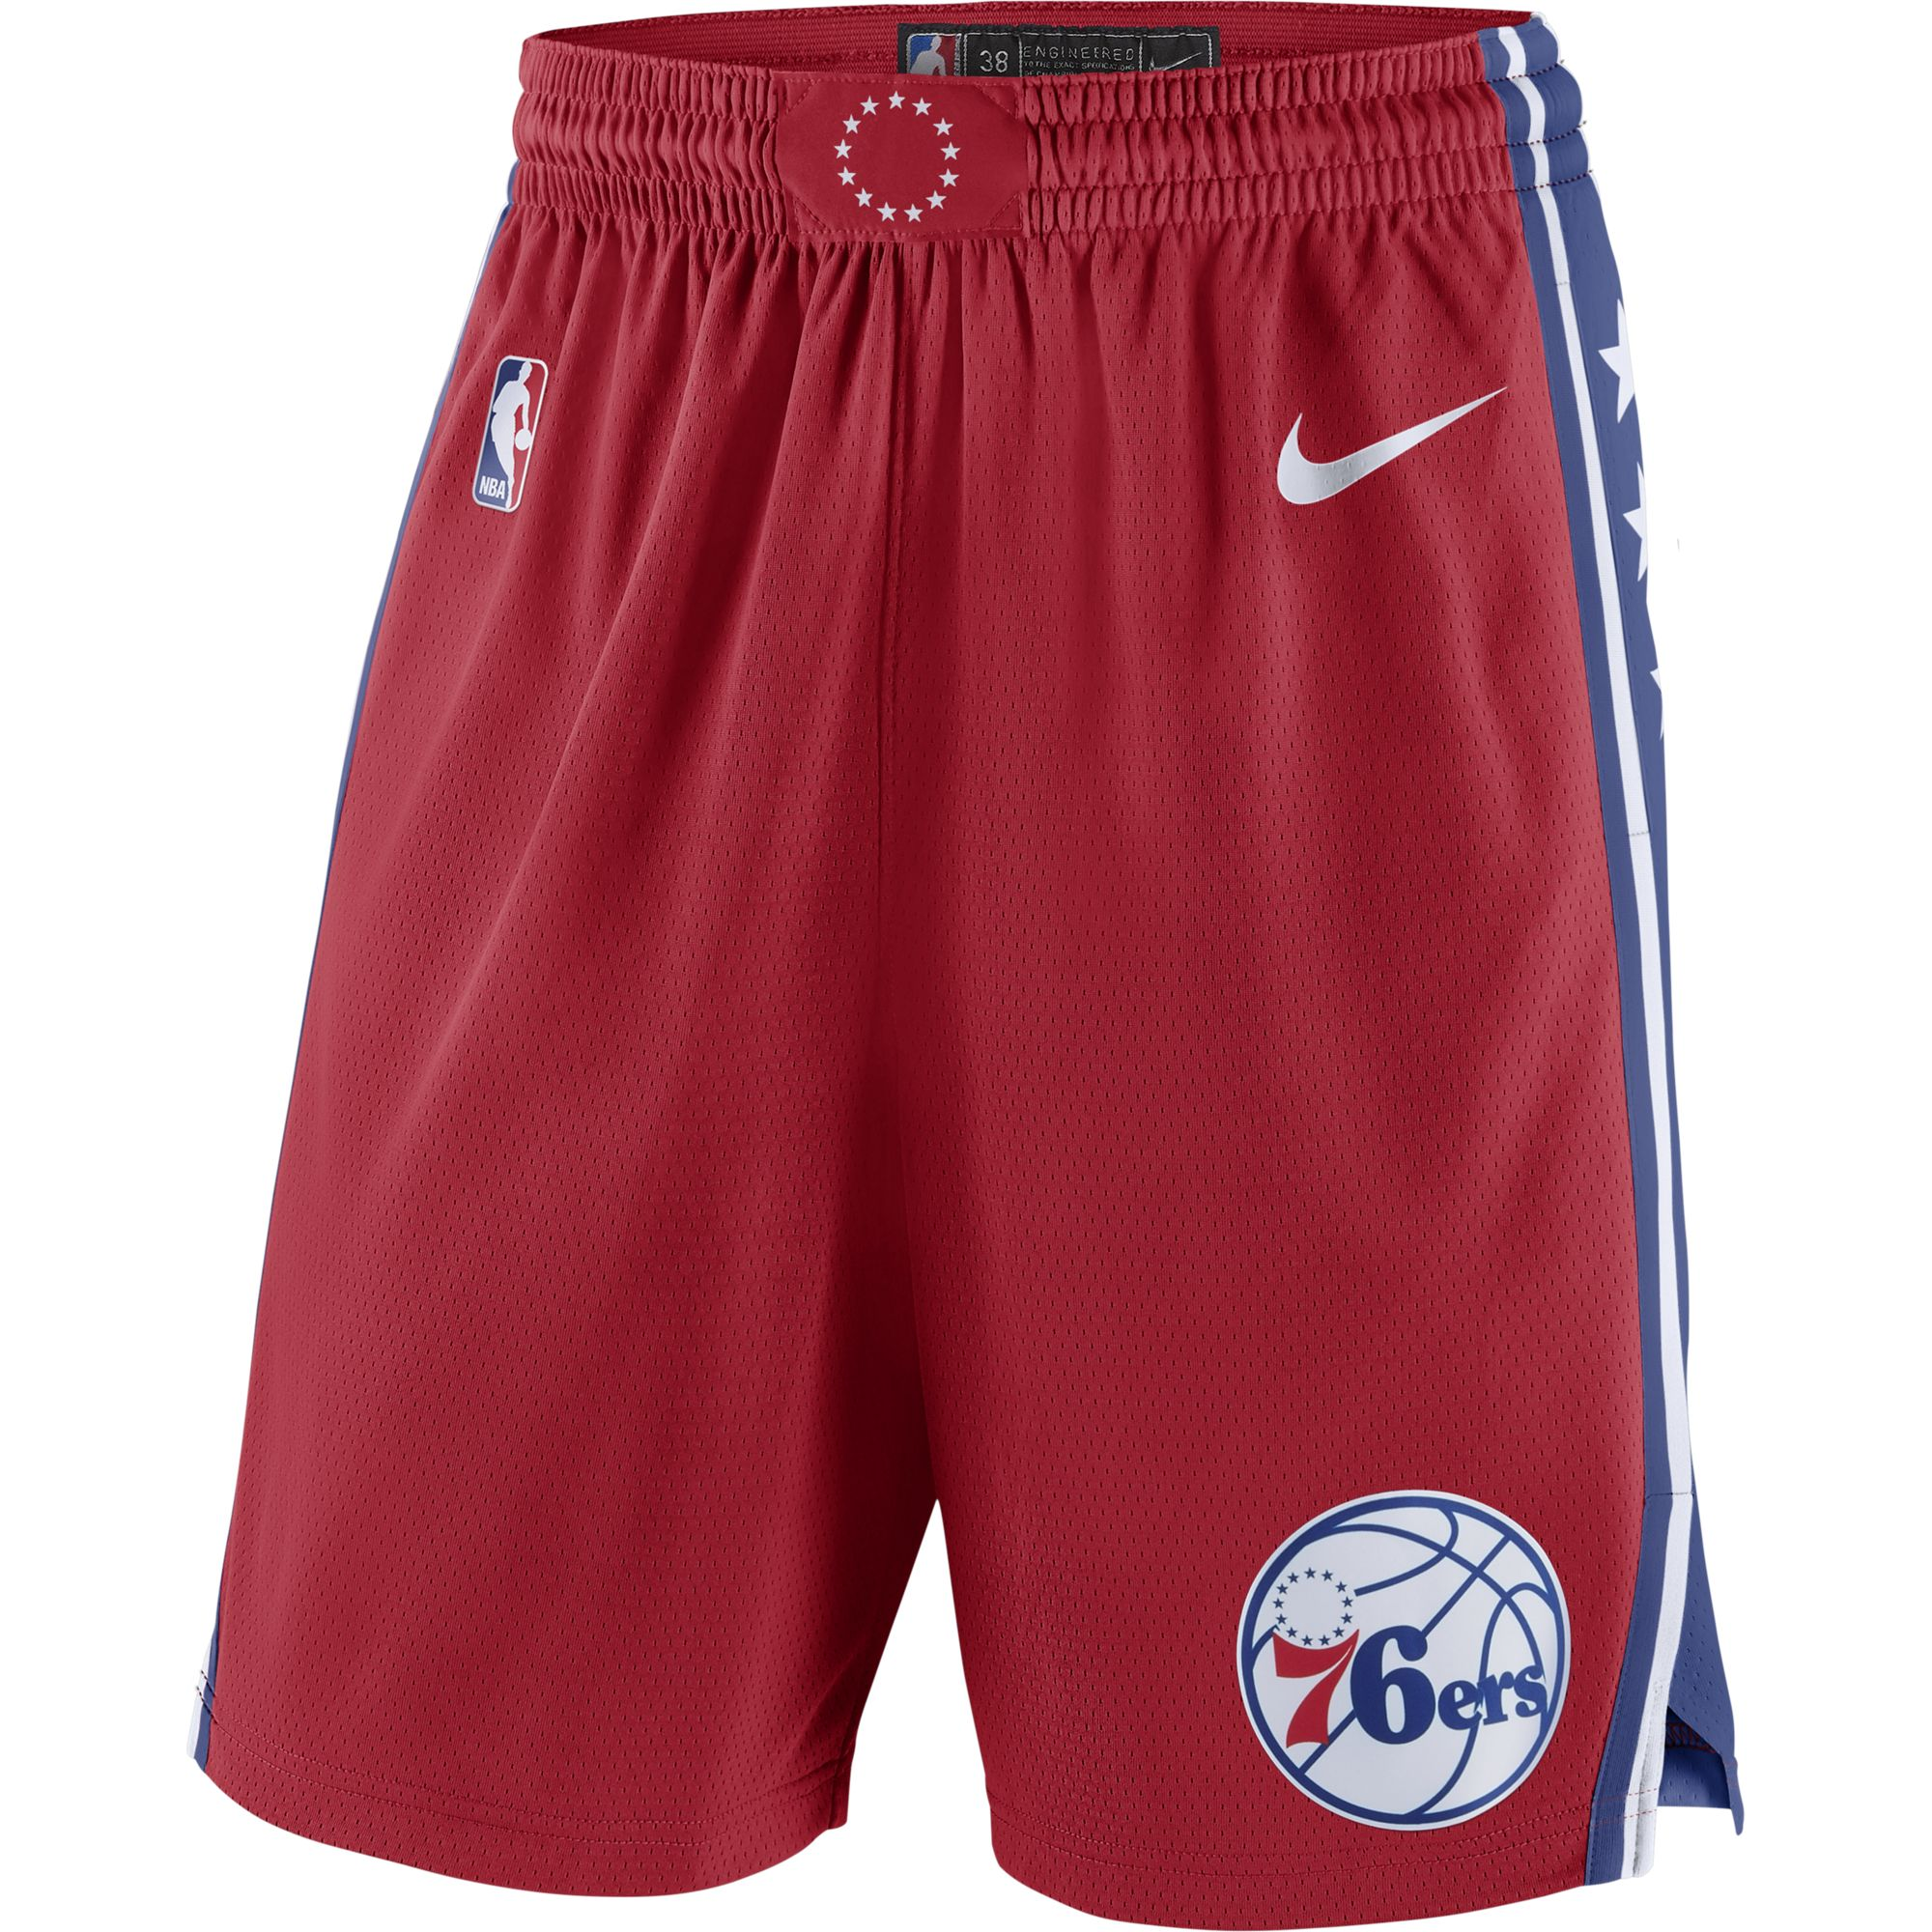 Philadelphia 76ers Nike 2019/20 Statement Edition Swingman Shorts - Red